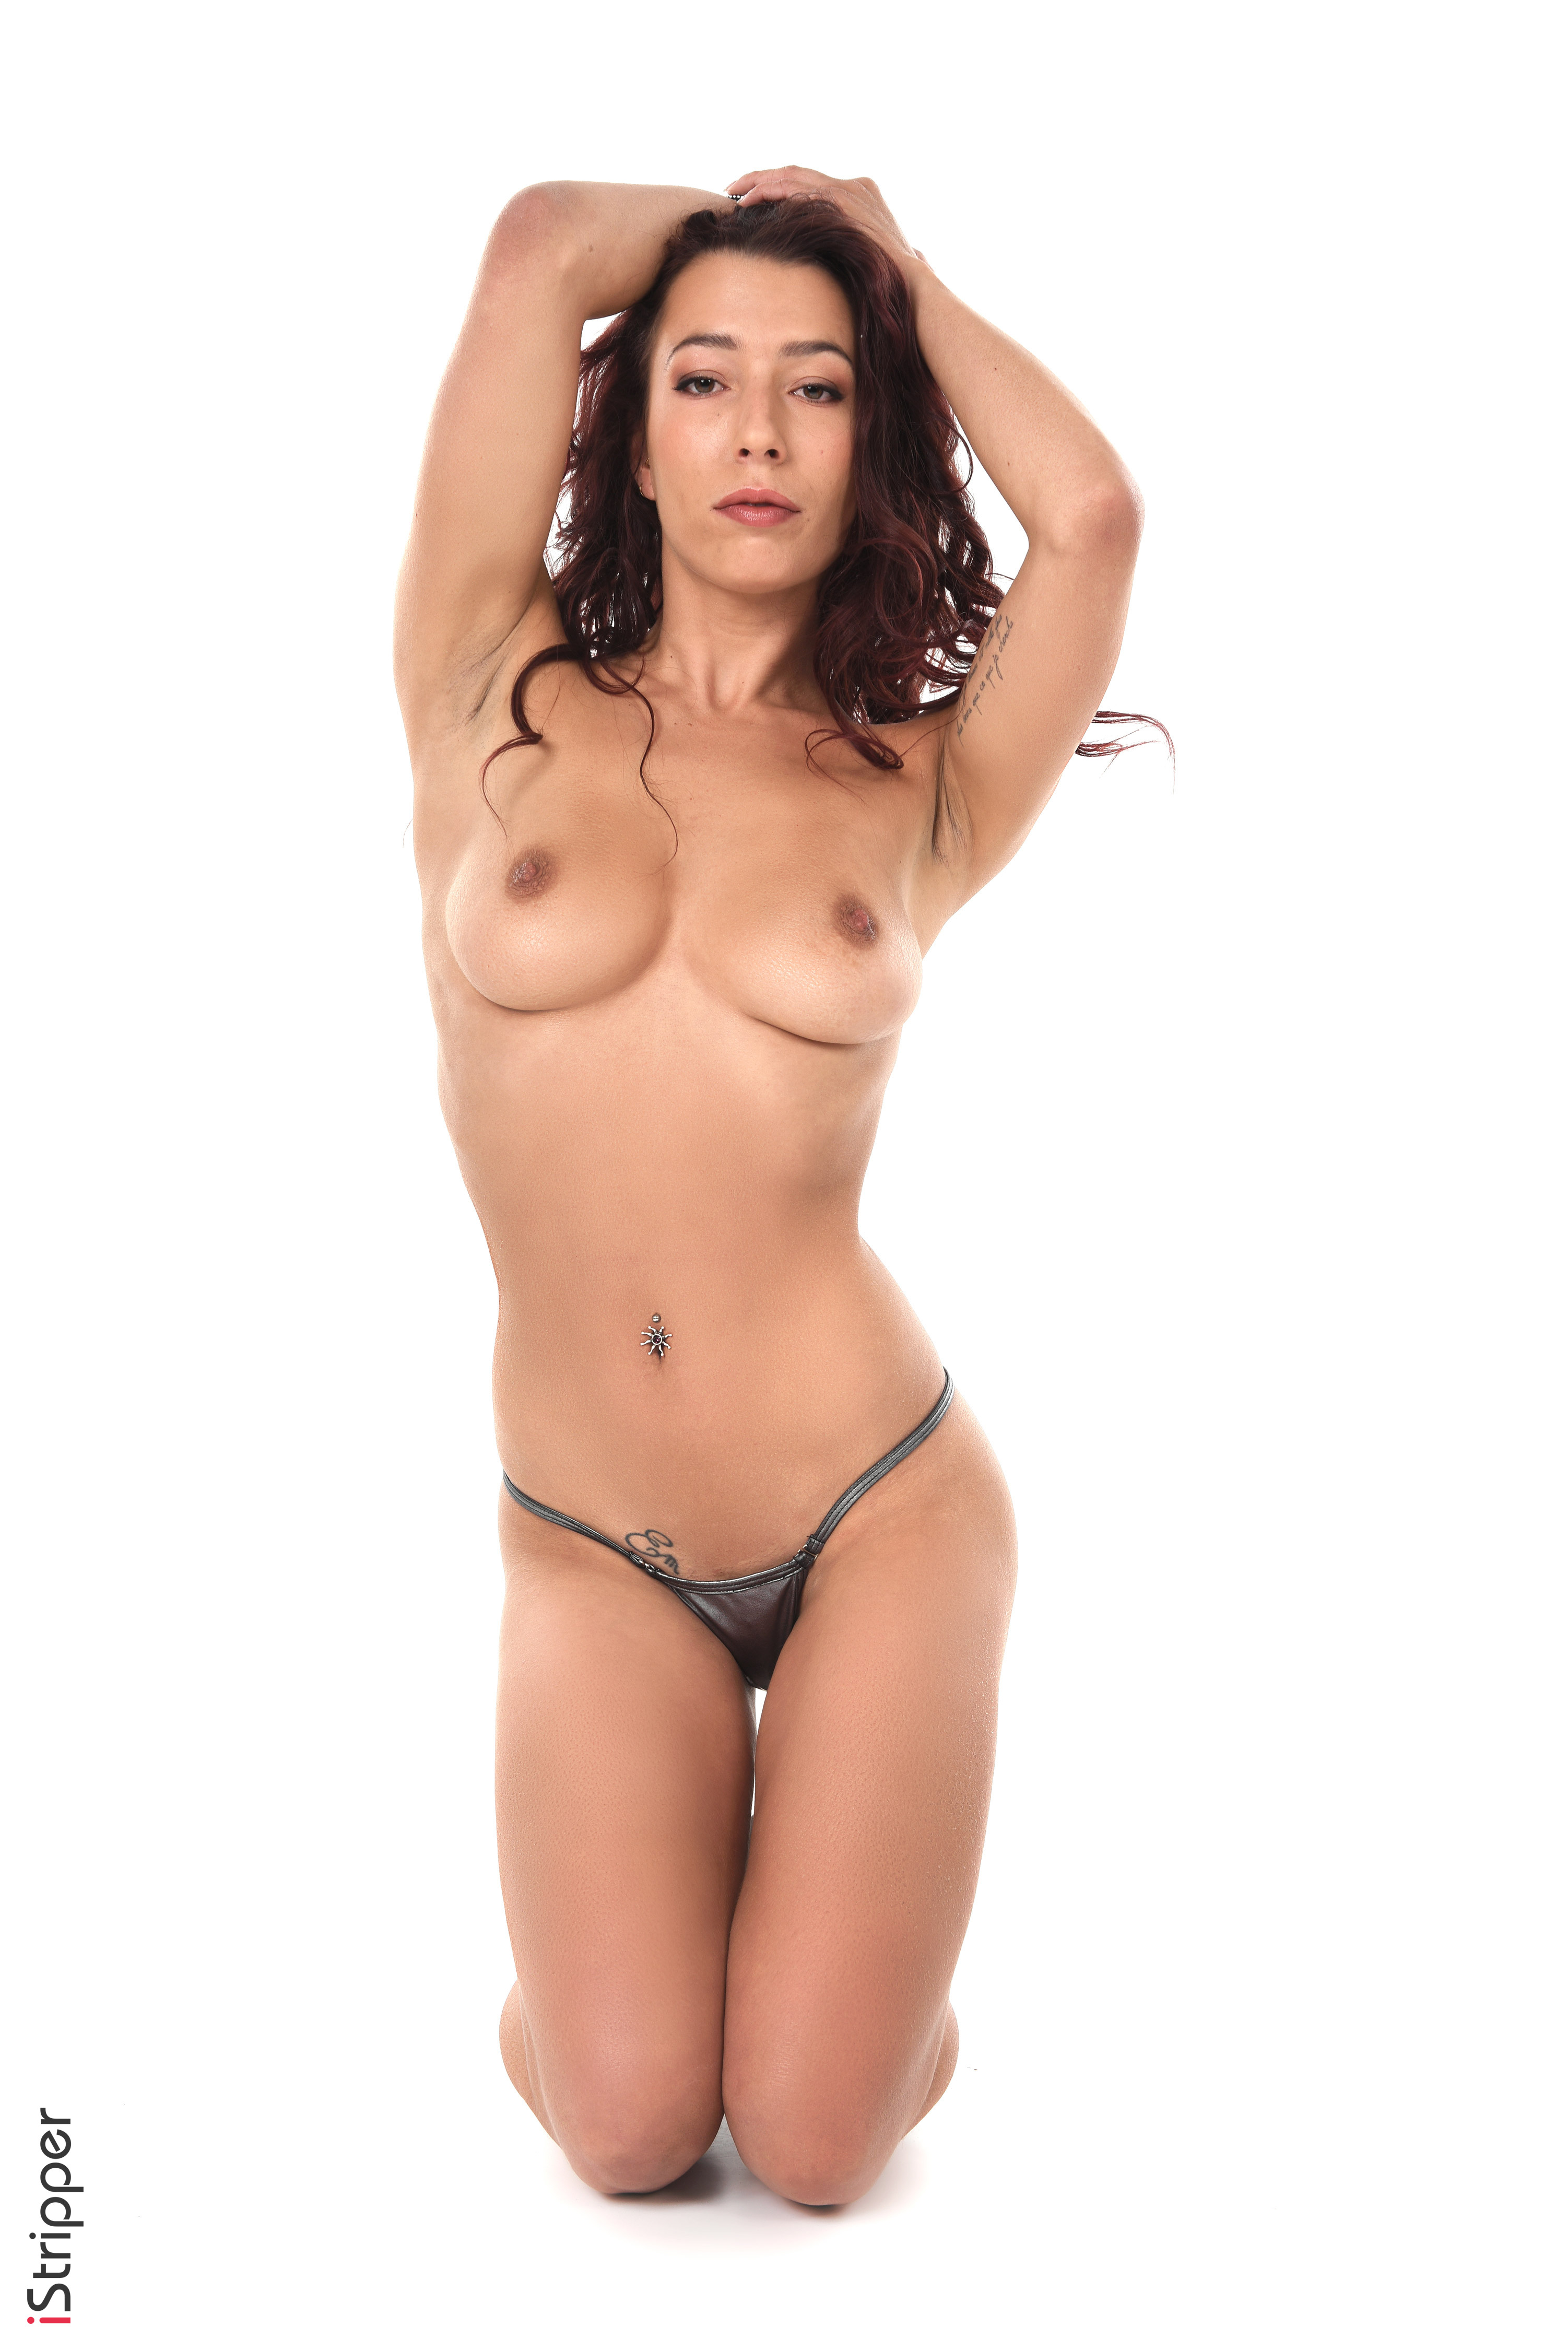 sexy lingerie models nude